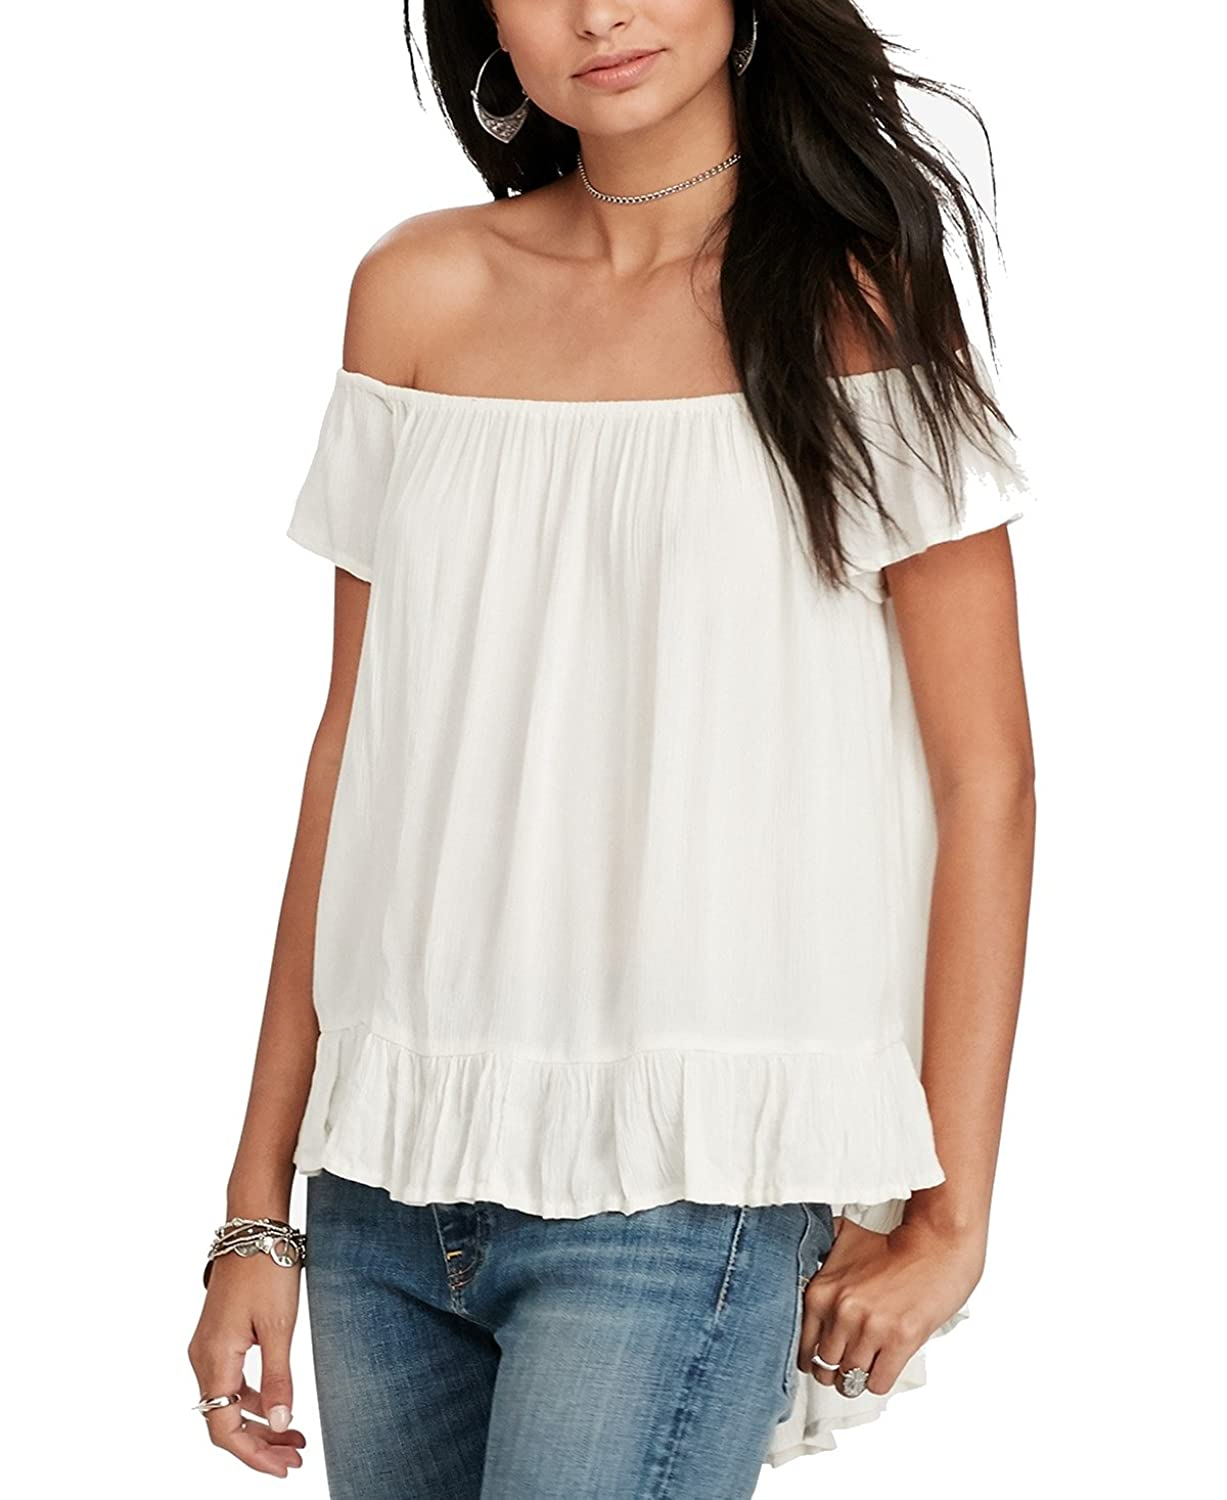 73e3bf25afec8 Top1  Denim   Supply Ralph Lauren Womens Crinkled Off-The-Shoulder Casual  Top